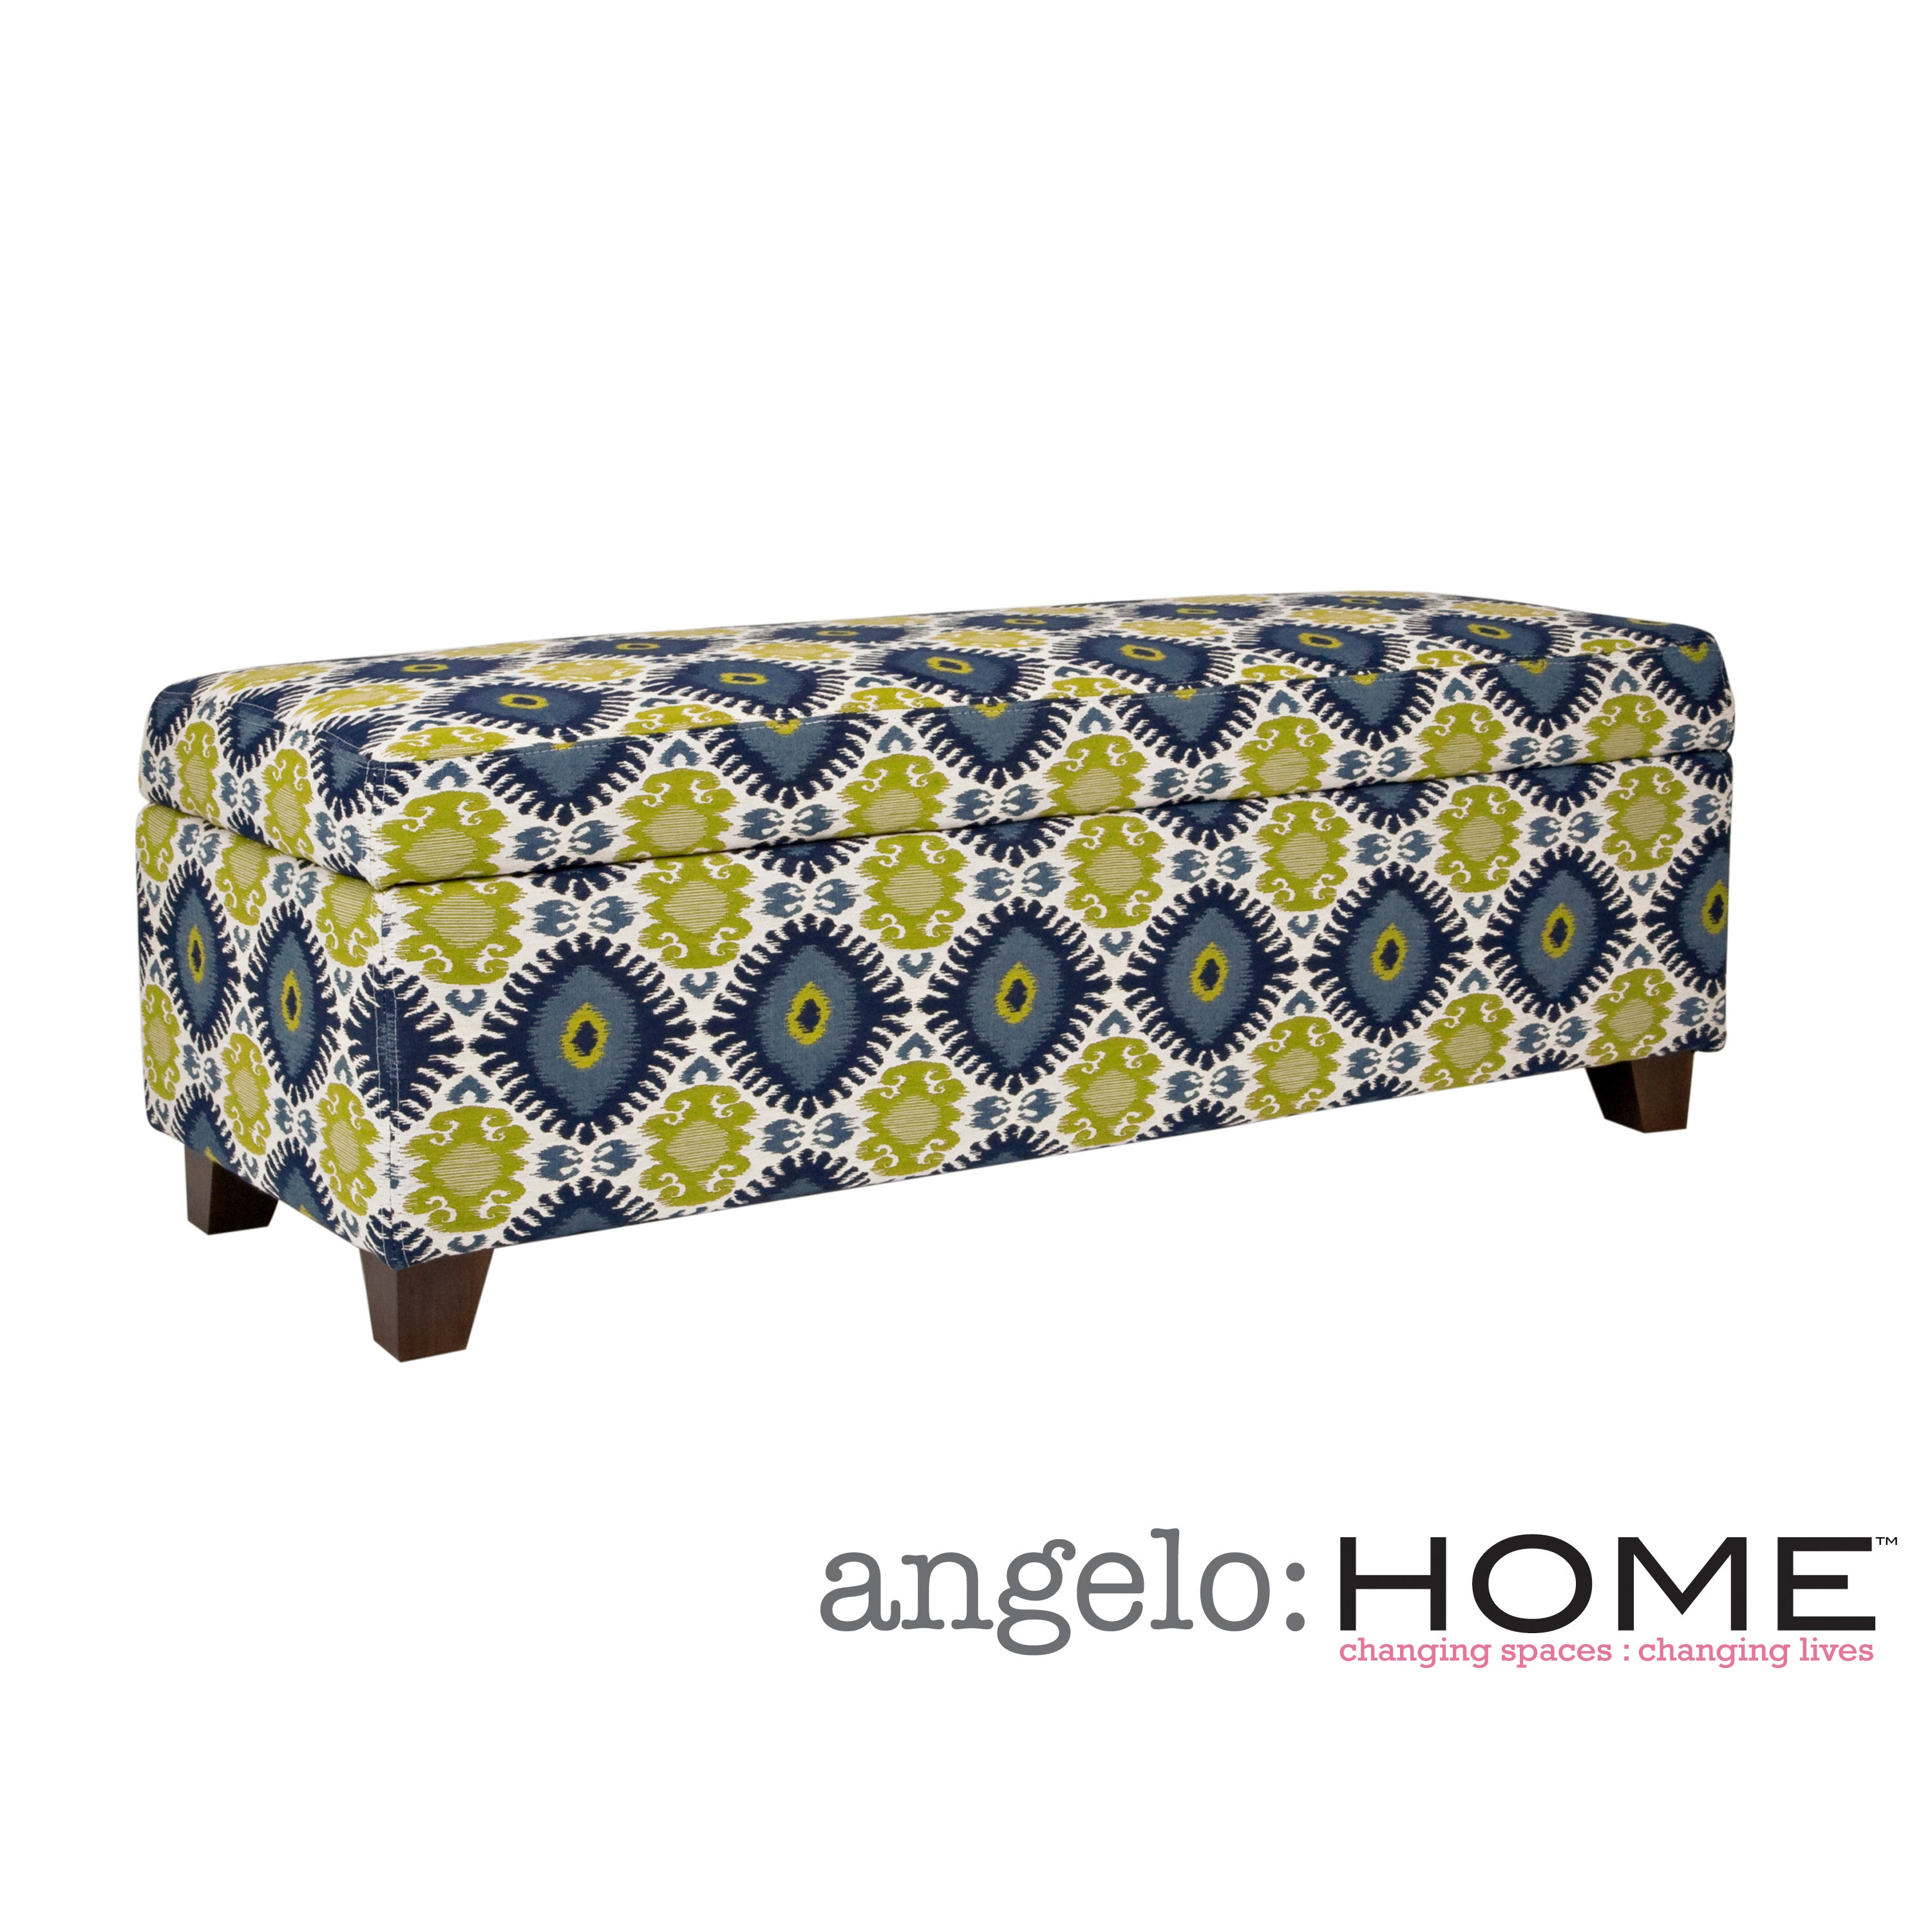 Angelohome angelo:HOME Kent Retro Blue-Green Geometric Burst Wall Hugger Trunk Storage Ottoman at Sears.com